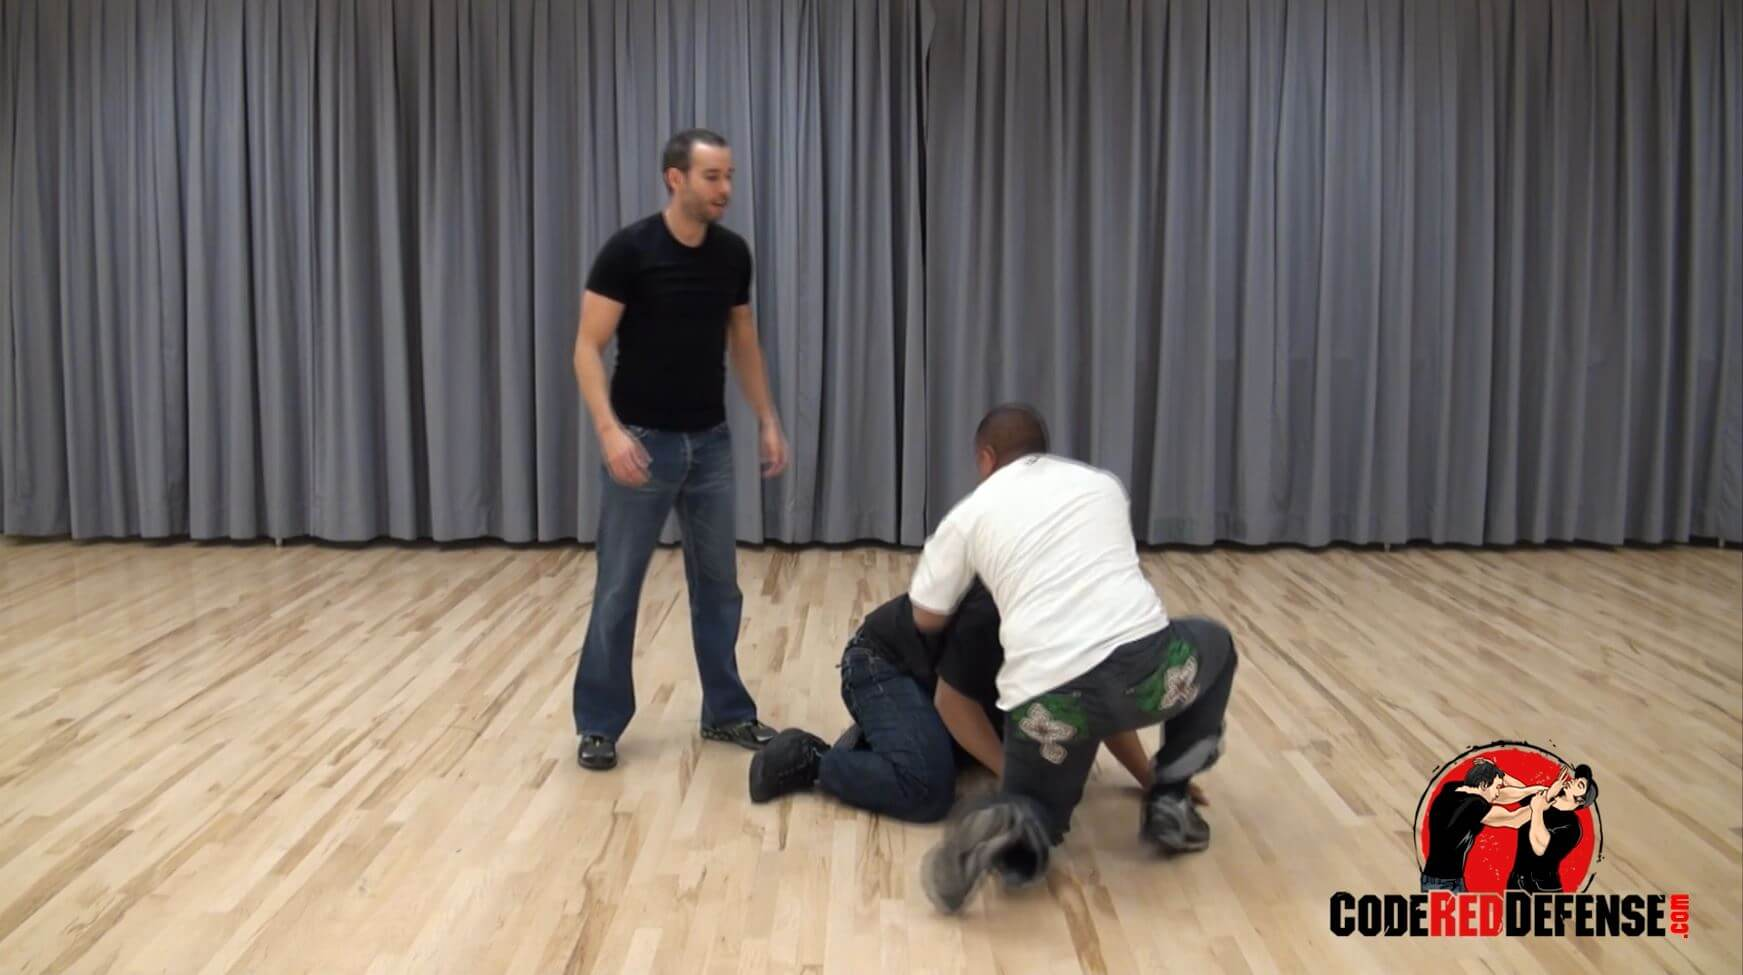 The Importance of Awareness During a Fight